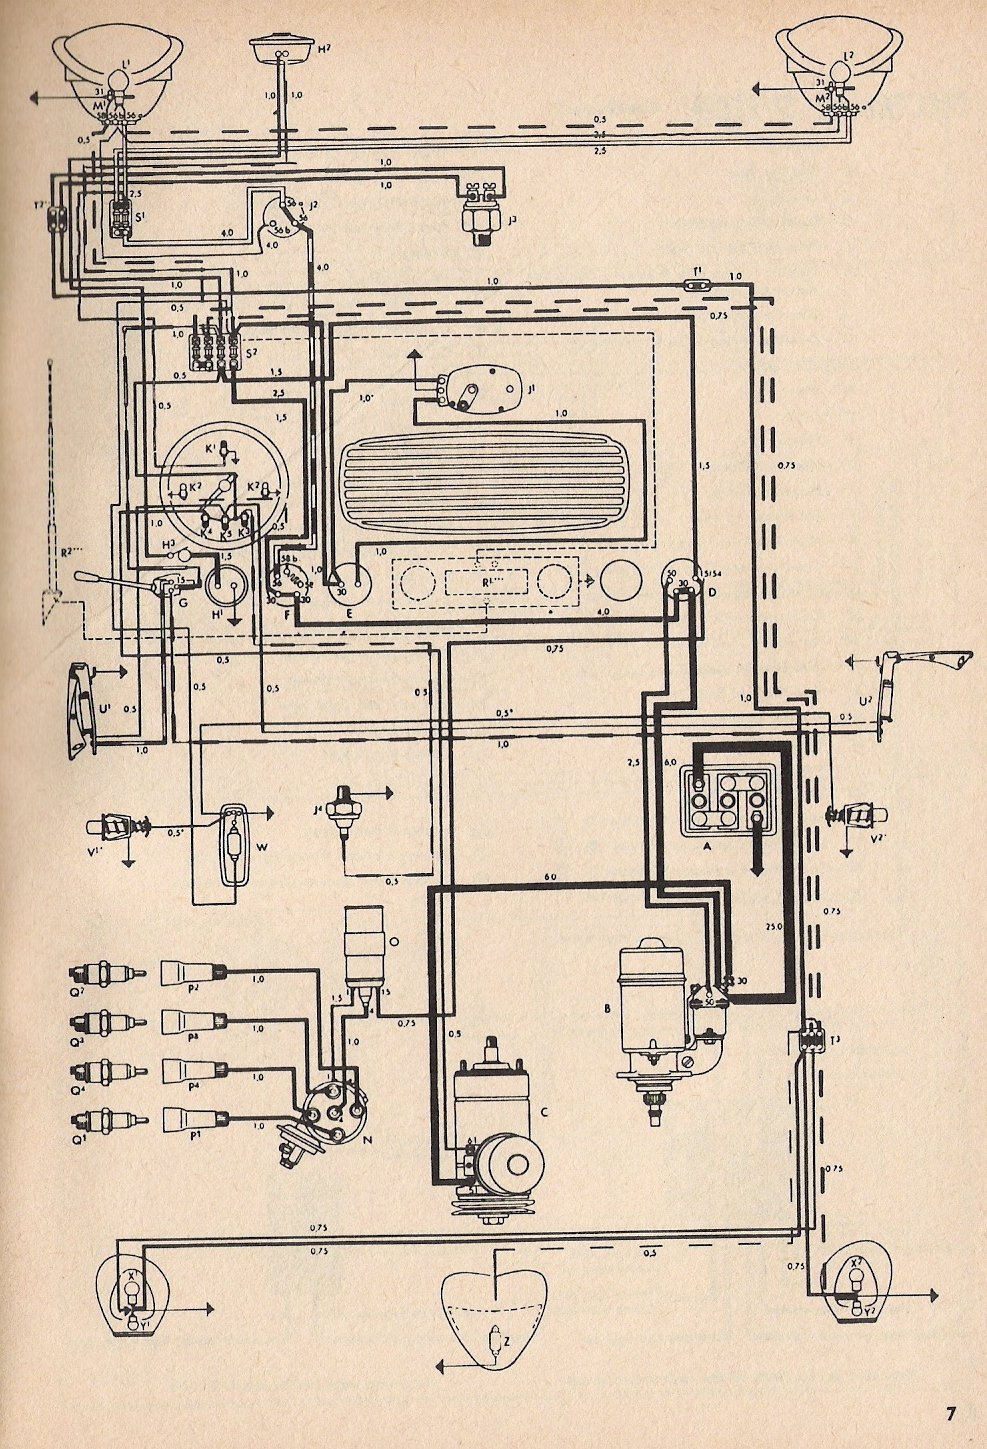 1968 Vw Beetle Wiring Diagram Library As Well Bus On 74 Super And